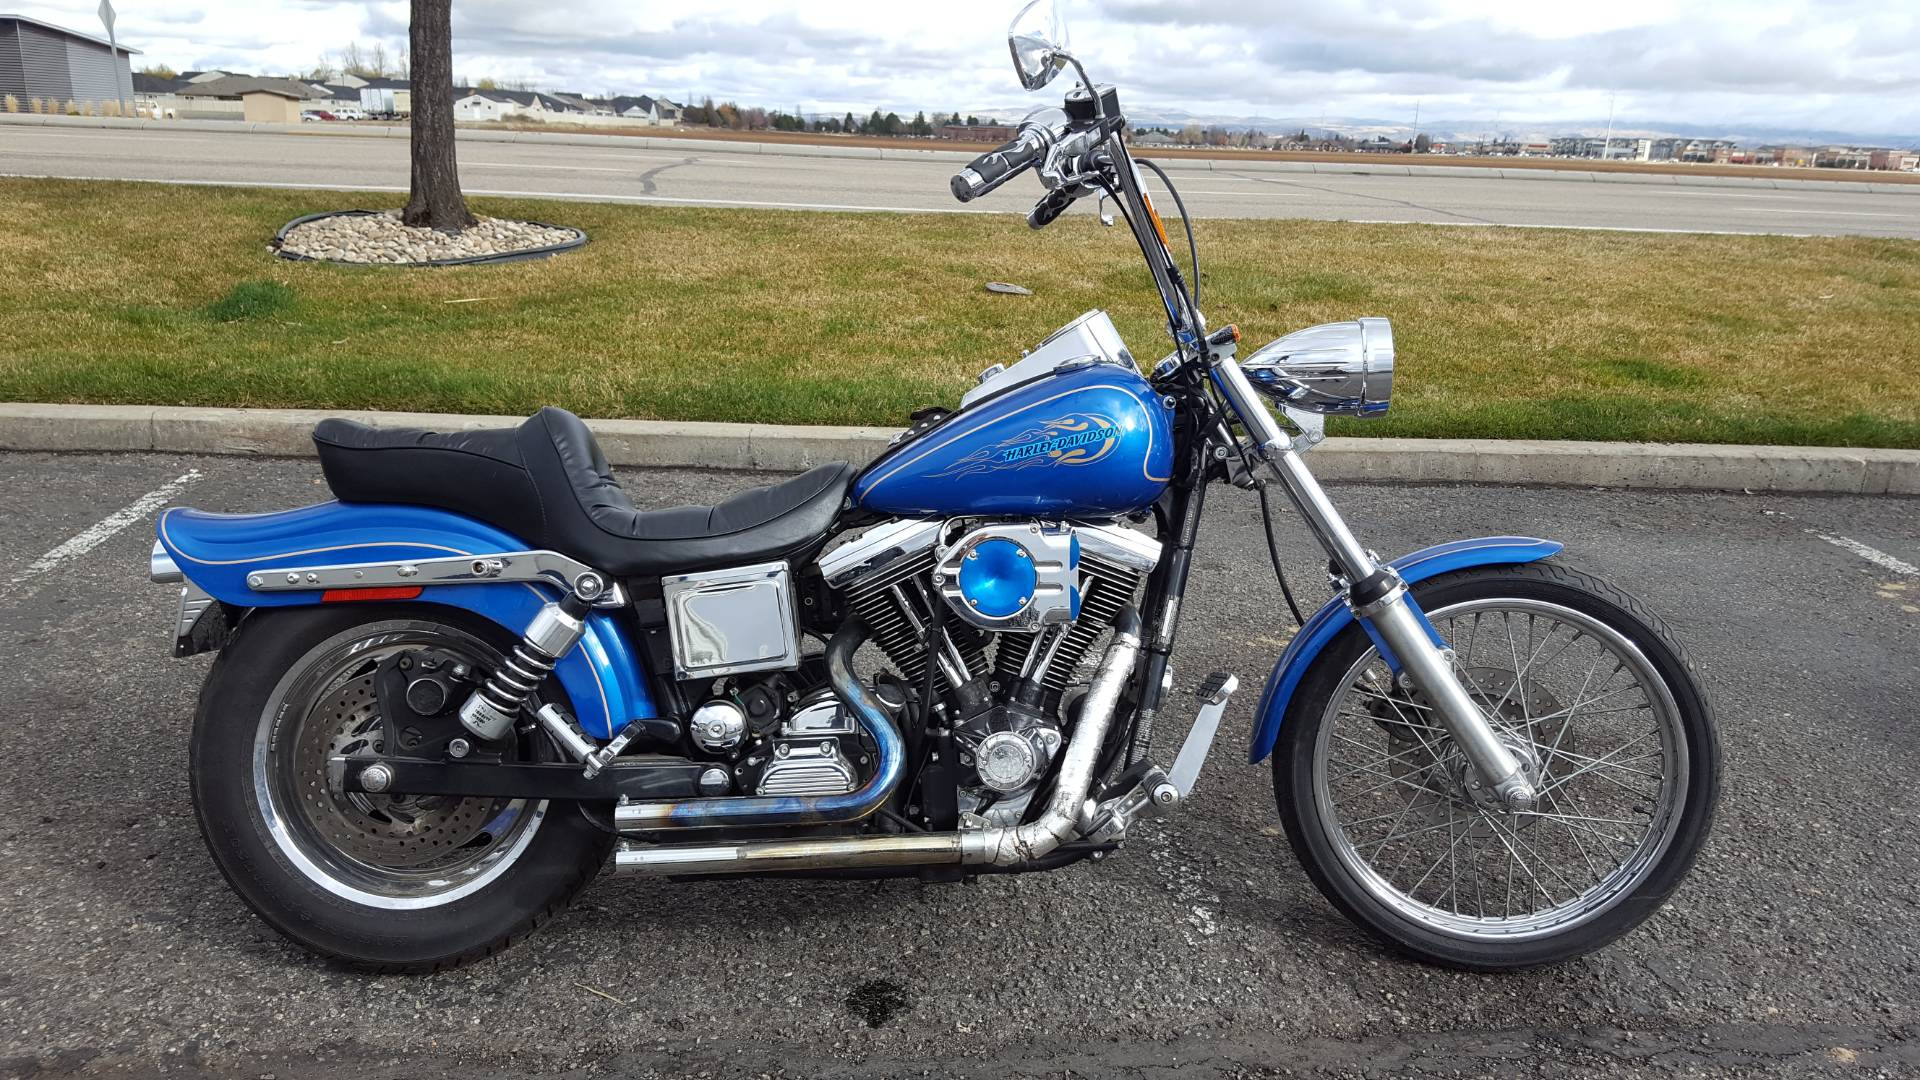 1997 FXDWG DYNA WIDE GLIDE